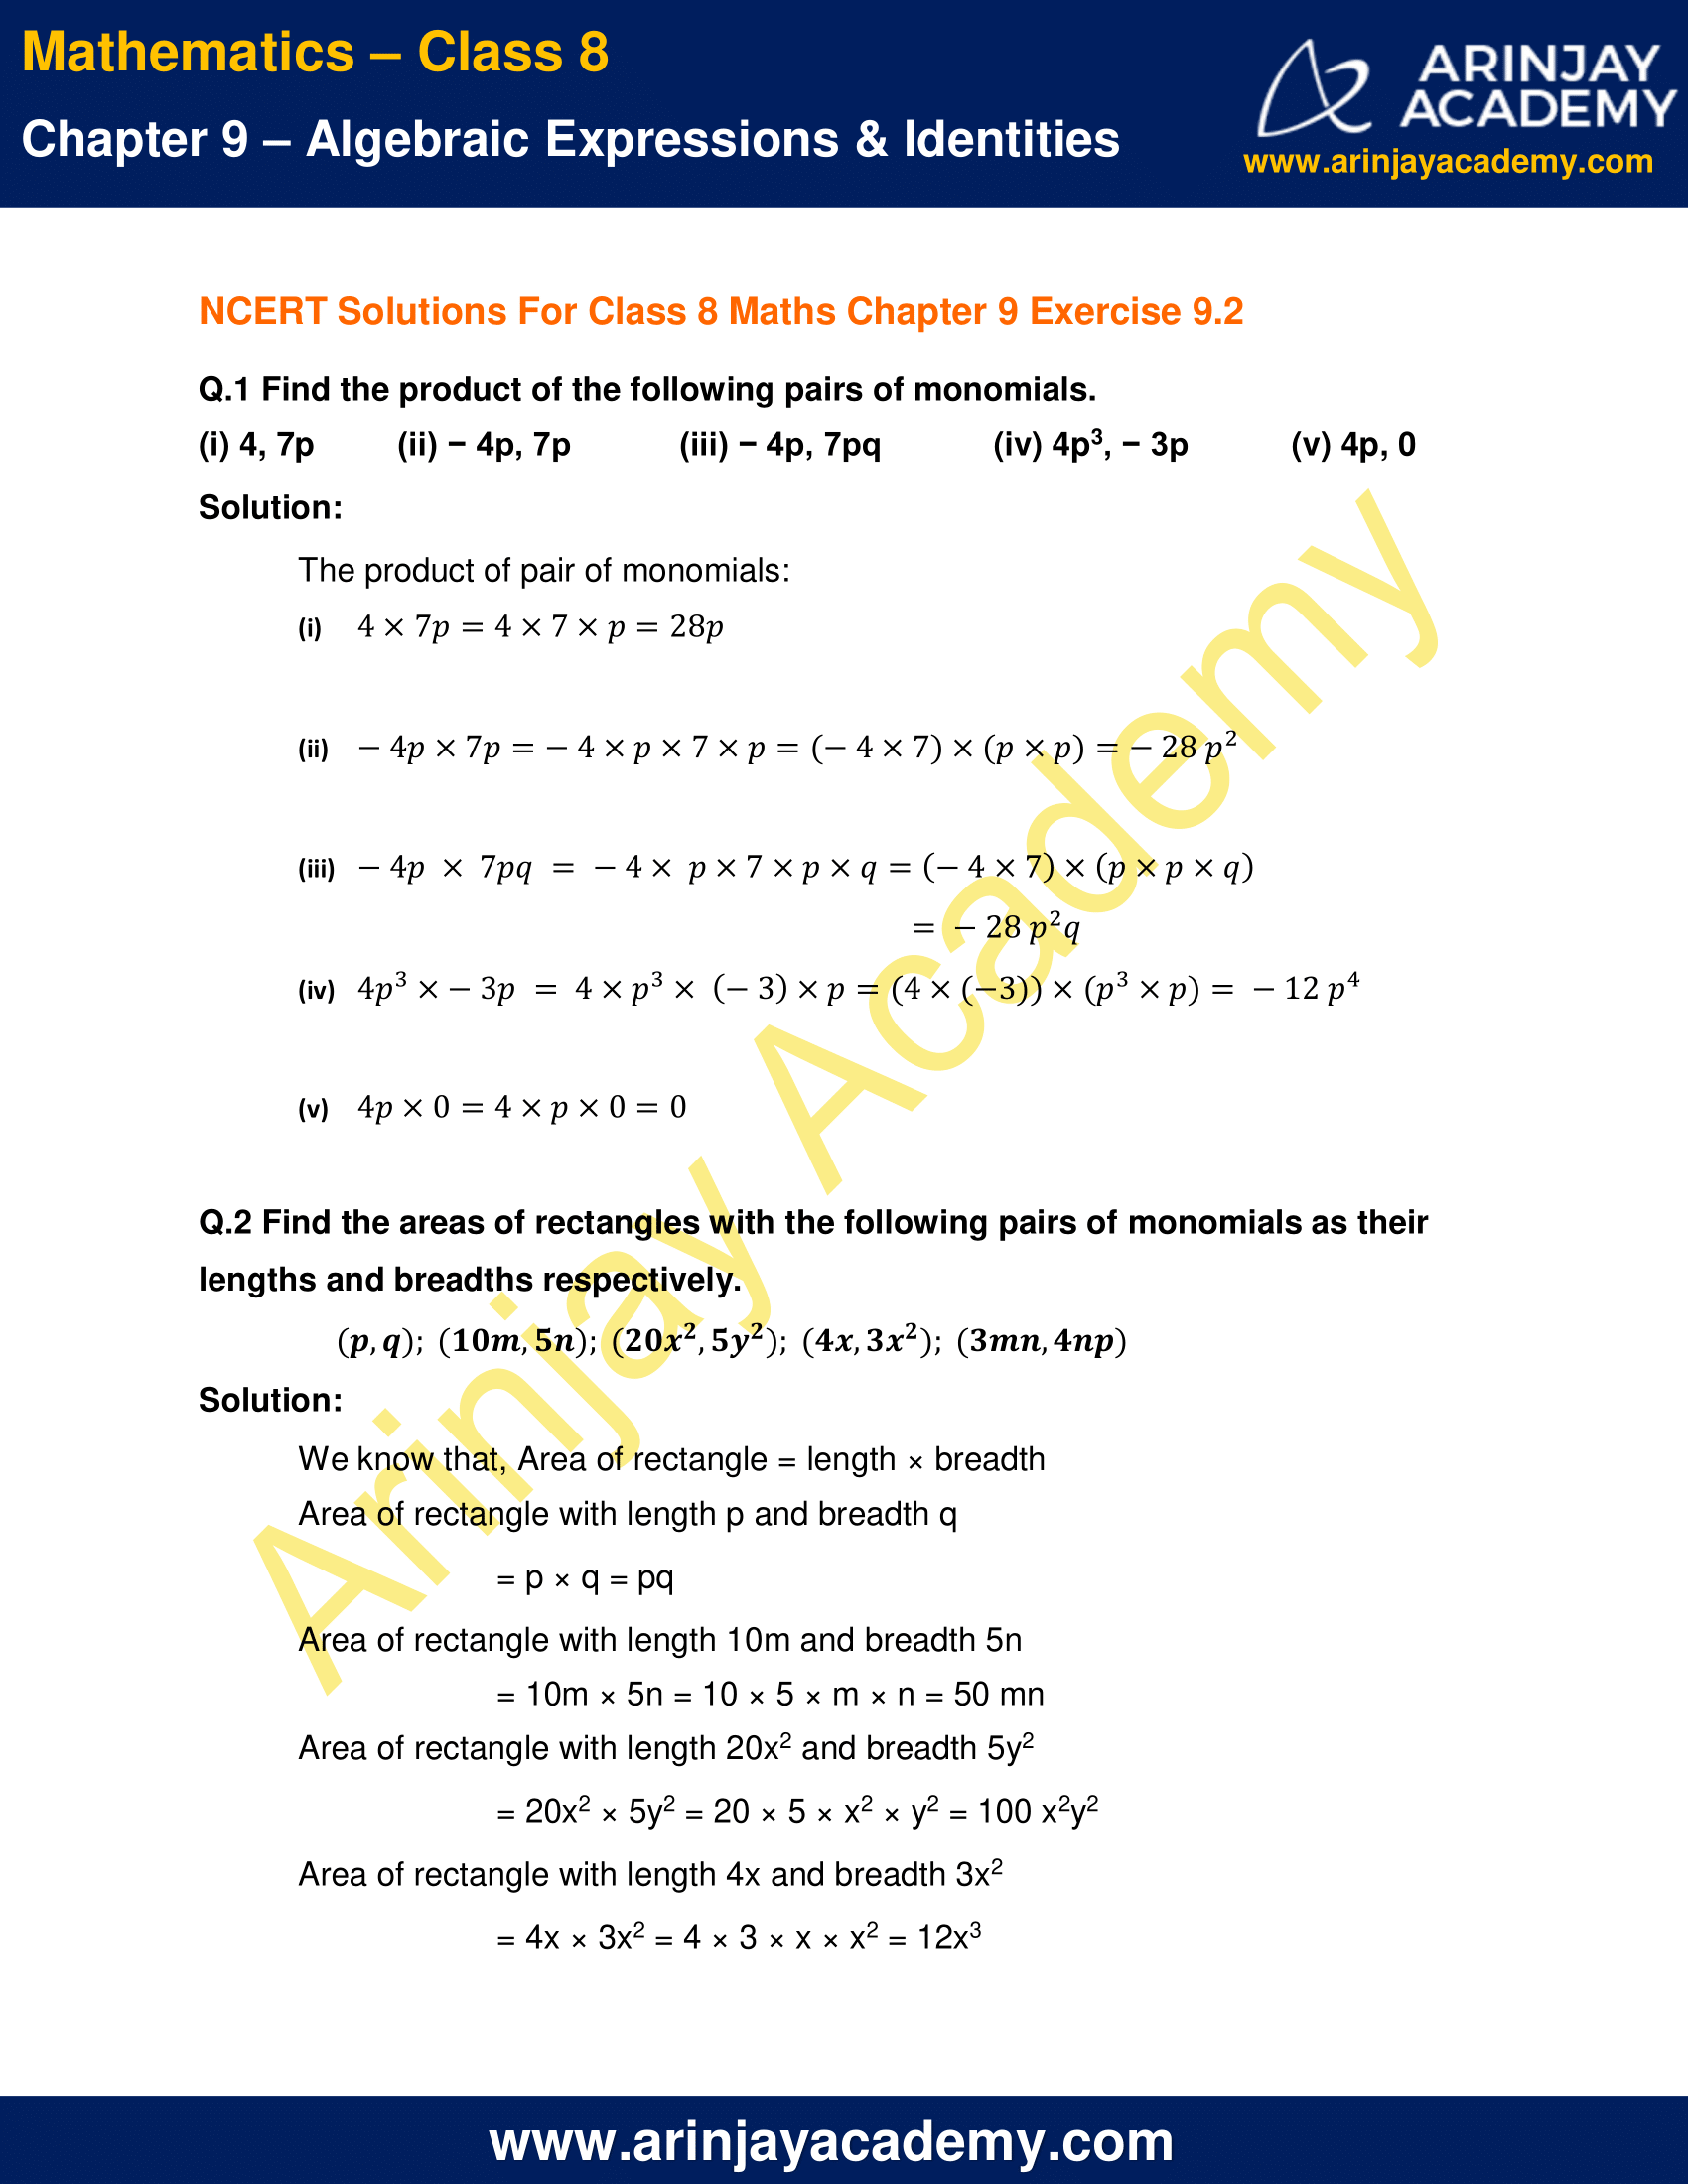 NCERT Solutions for Class 8 Maths Chapter 9 Exercise 9.2 image 1